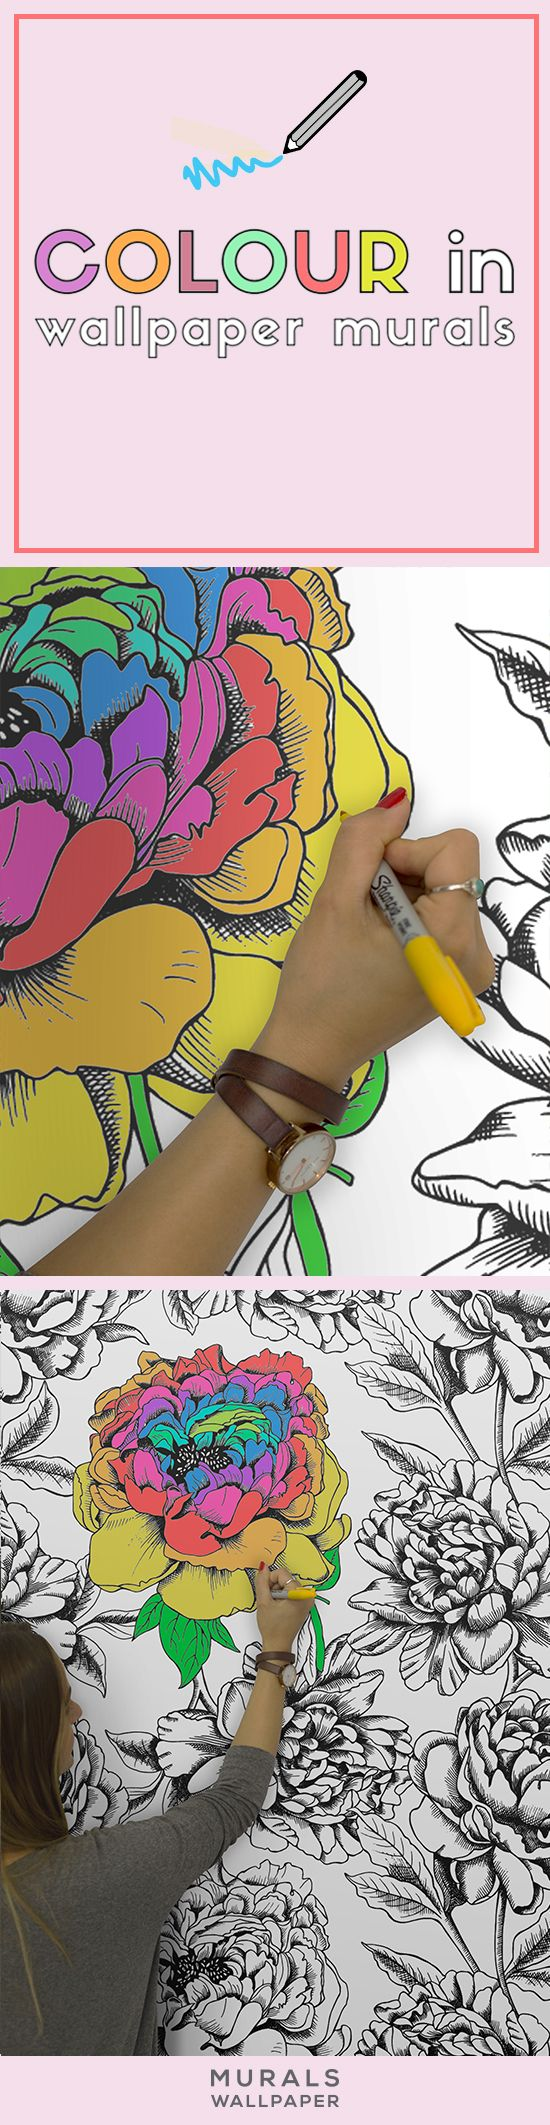 The wallpaper coloring book - This Charming Wallpaper Design Is Both Beautiful And Fun